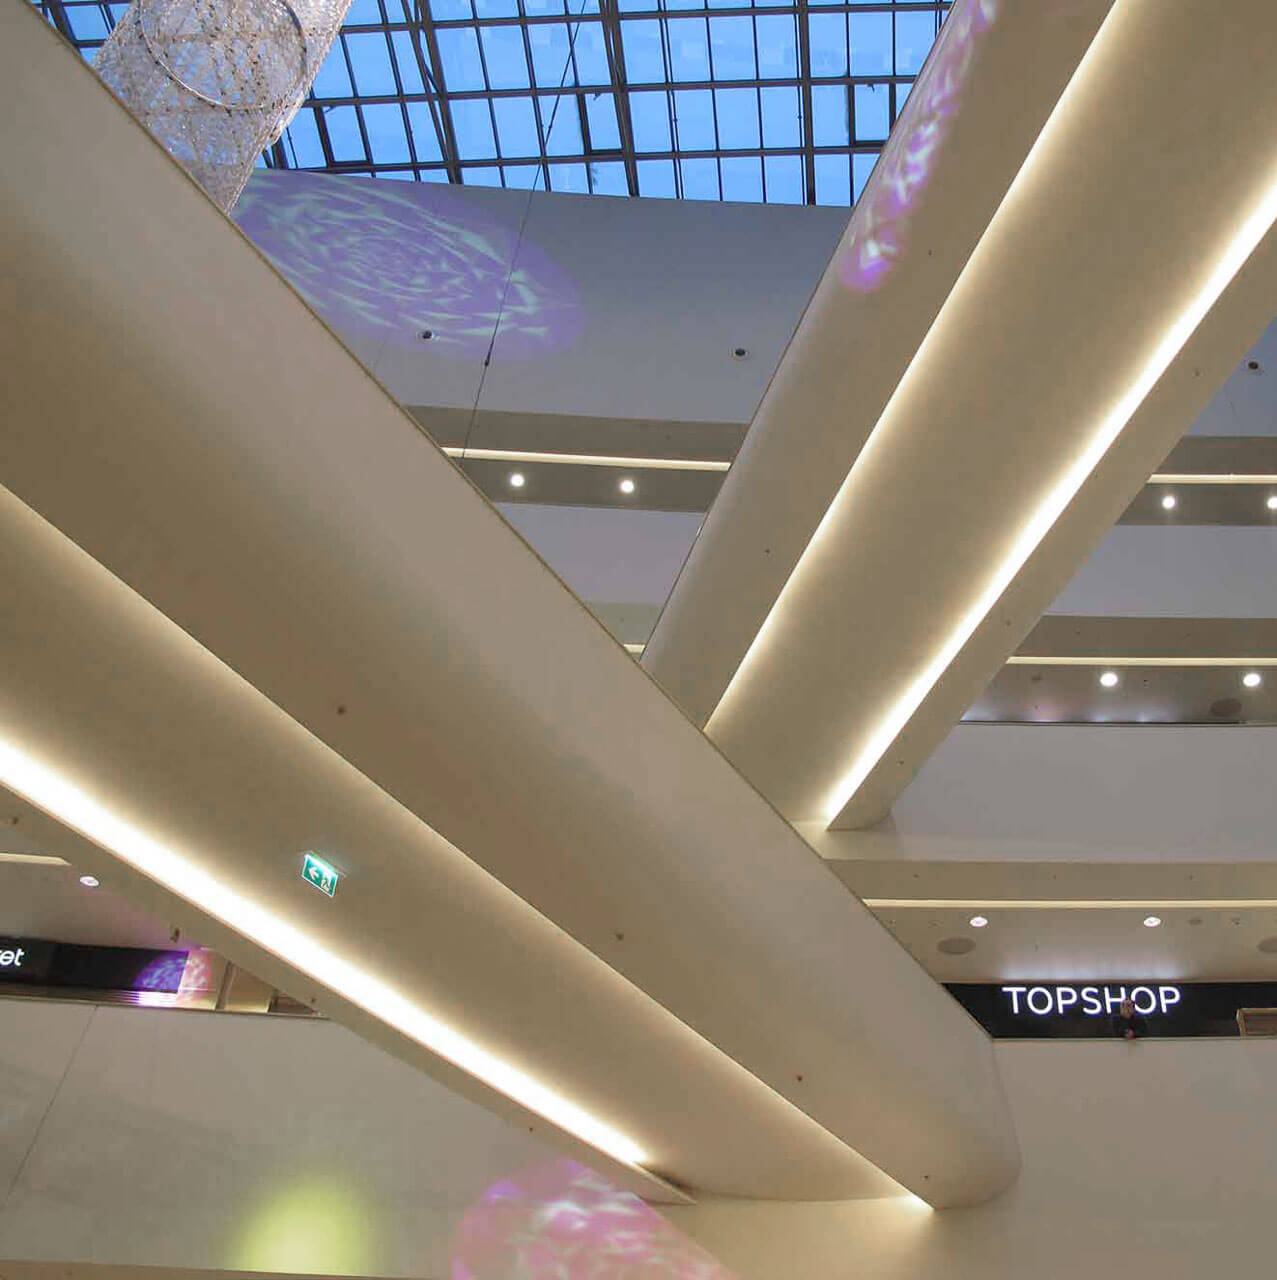 Galeria Mall shopping complex